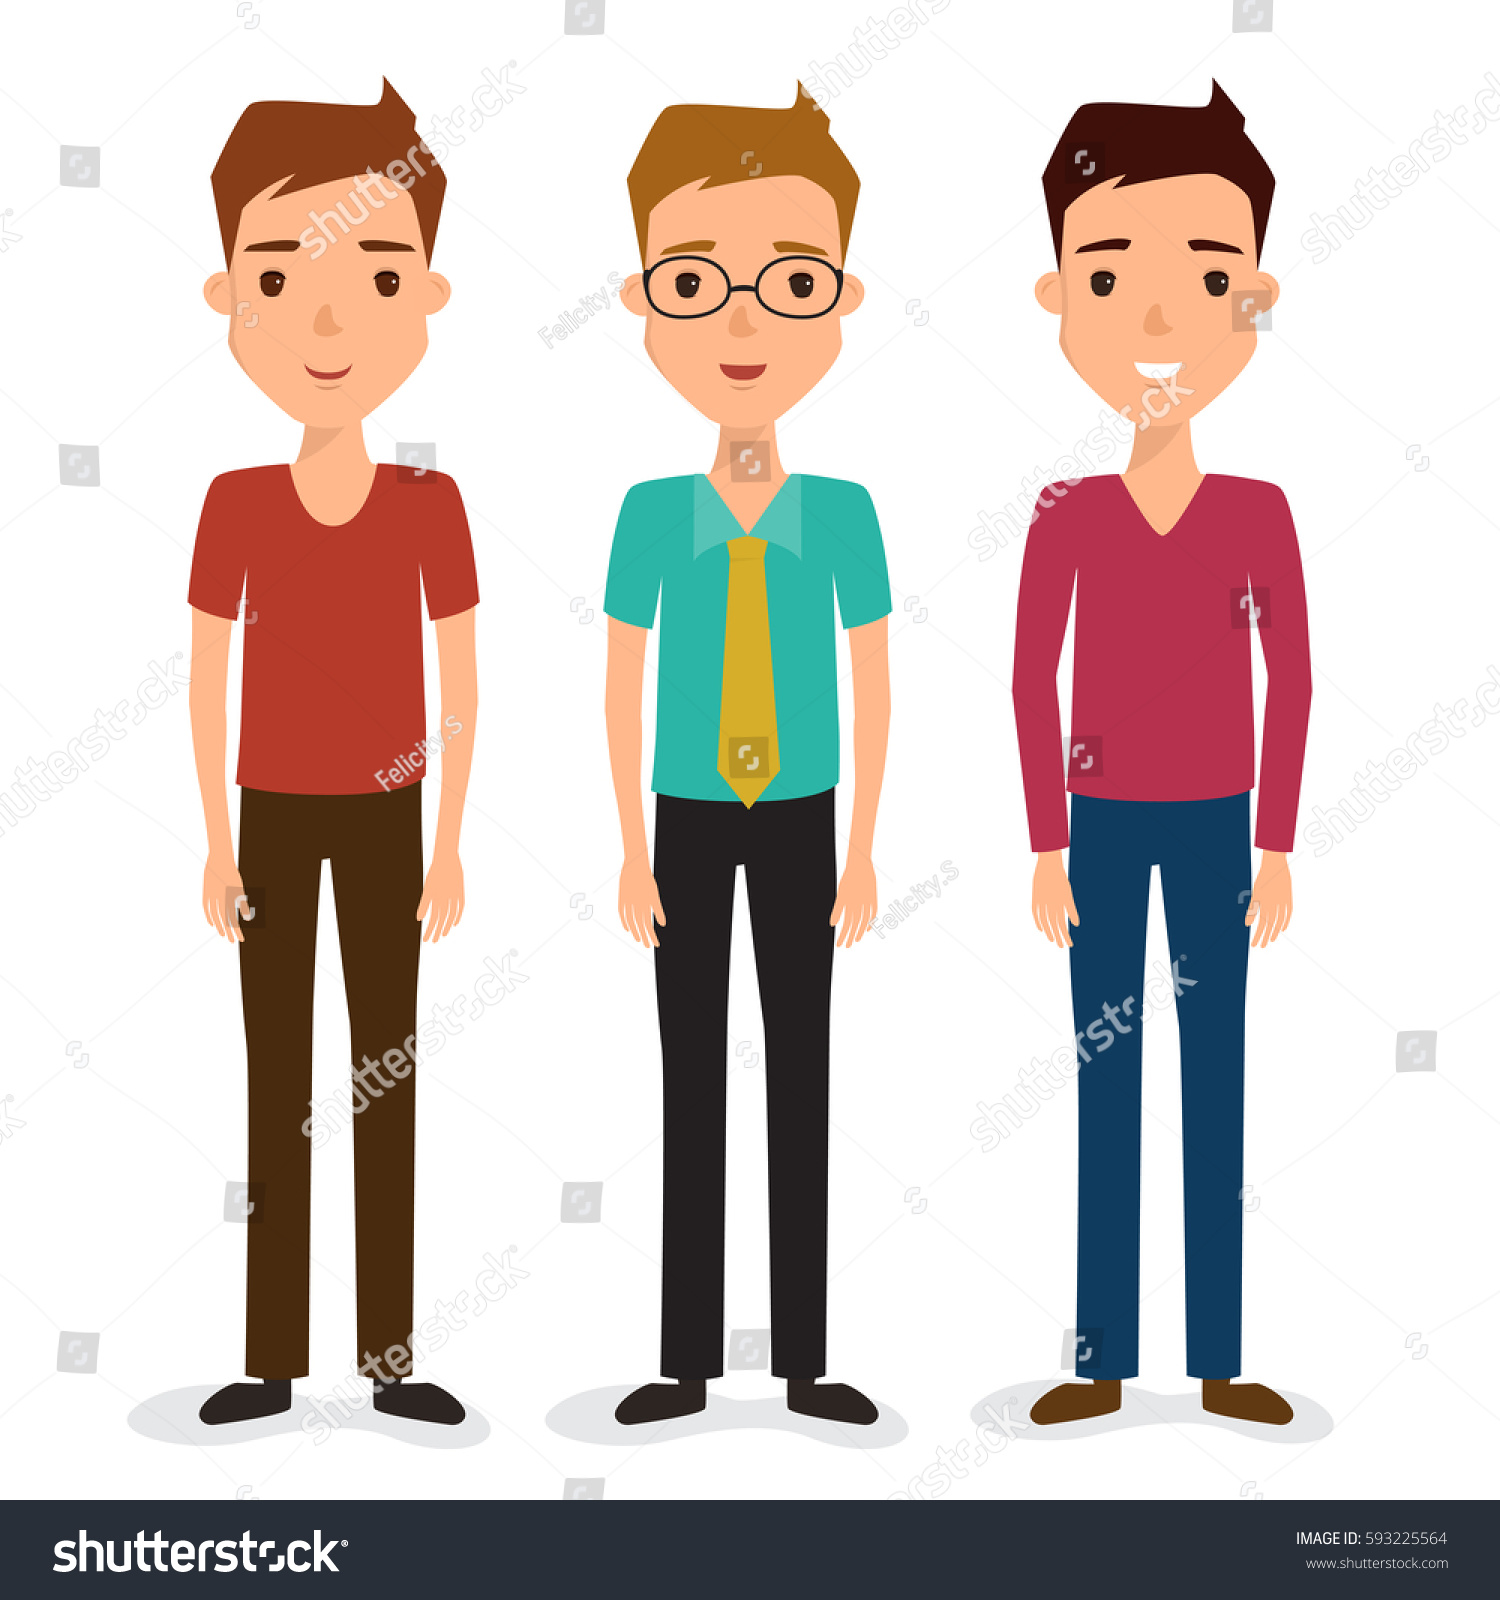 Business man character job avatar people stock vector for Character designer job